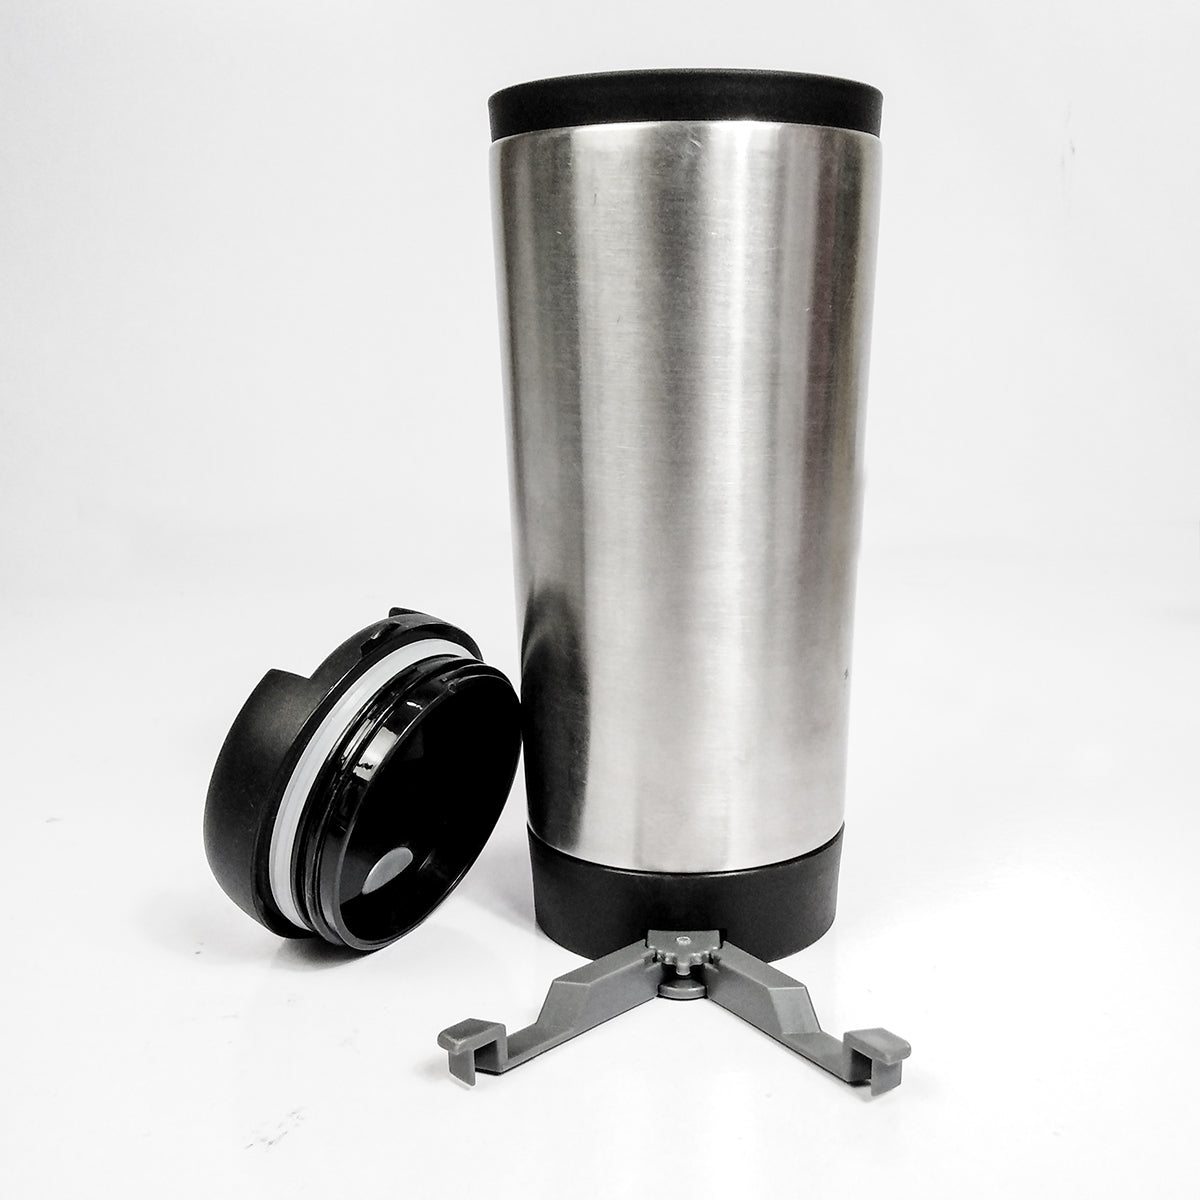 Stainless Steel Mug With Mobile Holder REFLECTS-NA7886